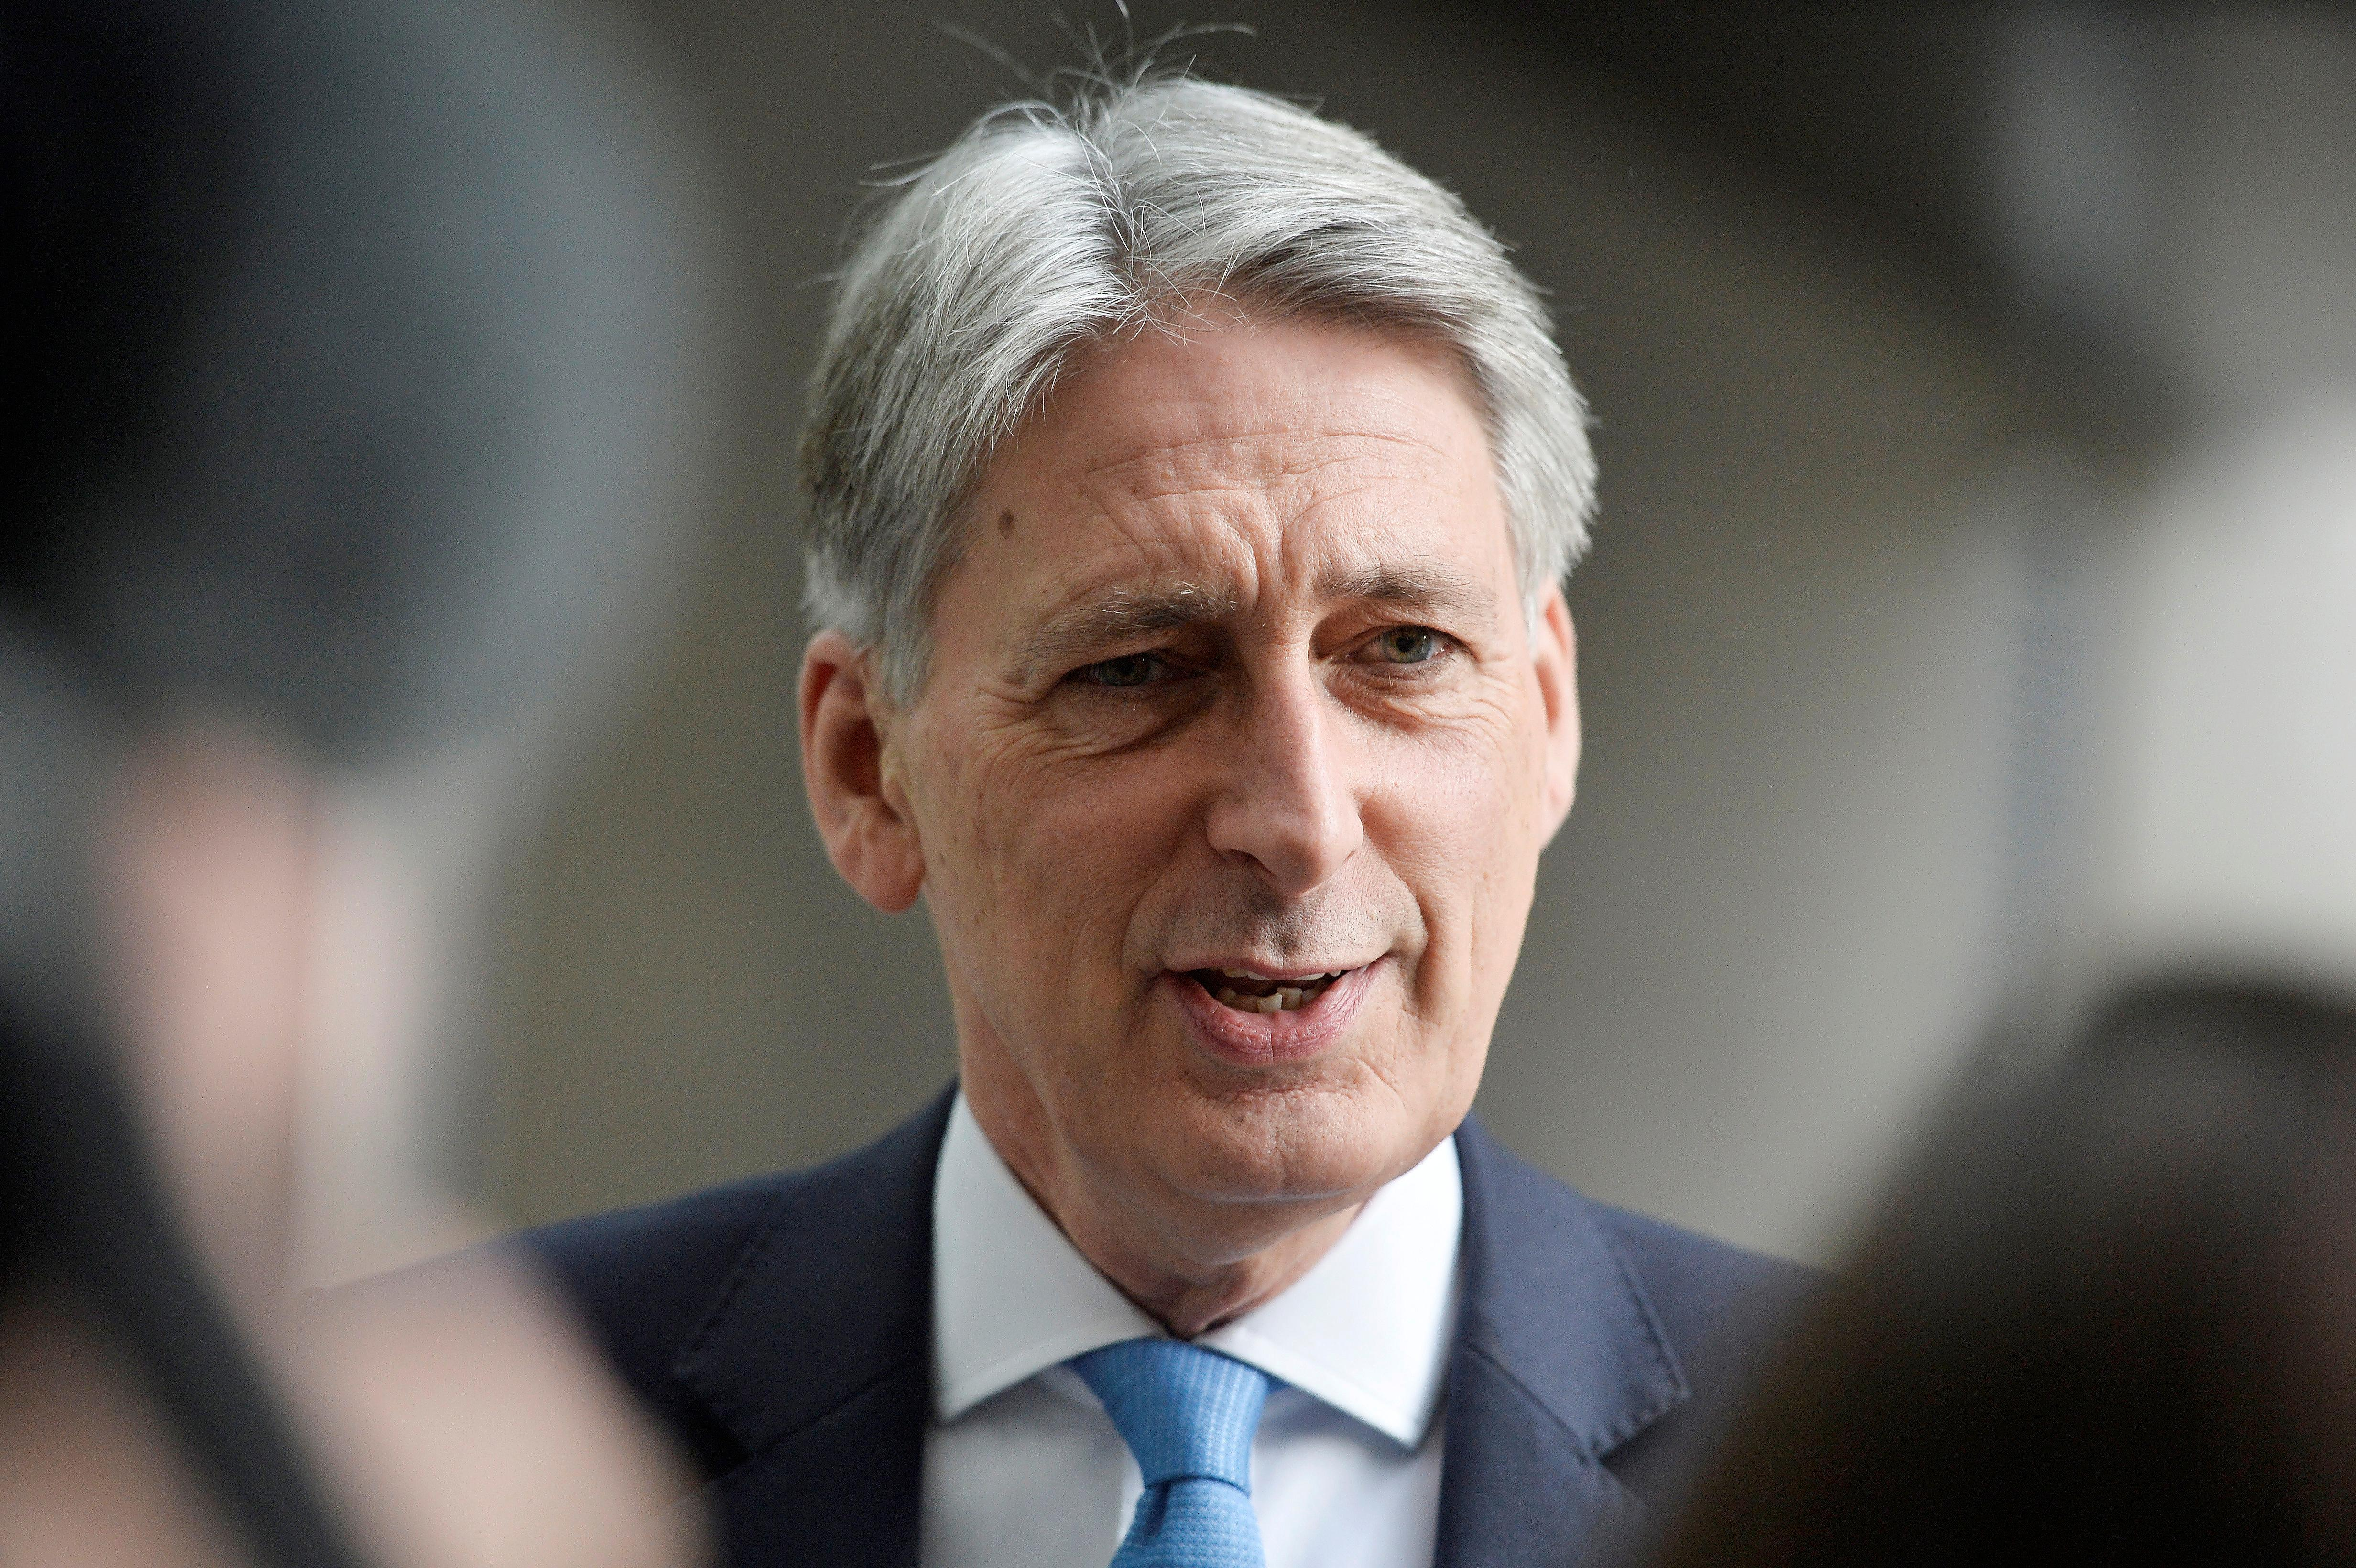 Britain's Chancellor of the Exchequer Philip Hammond will deliver his budget to the House of Commons on Nov. 22, 2017 Mary Turner